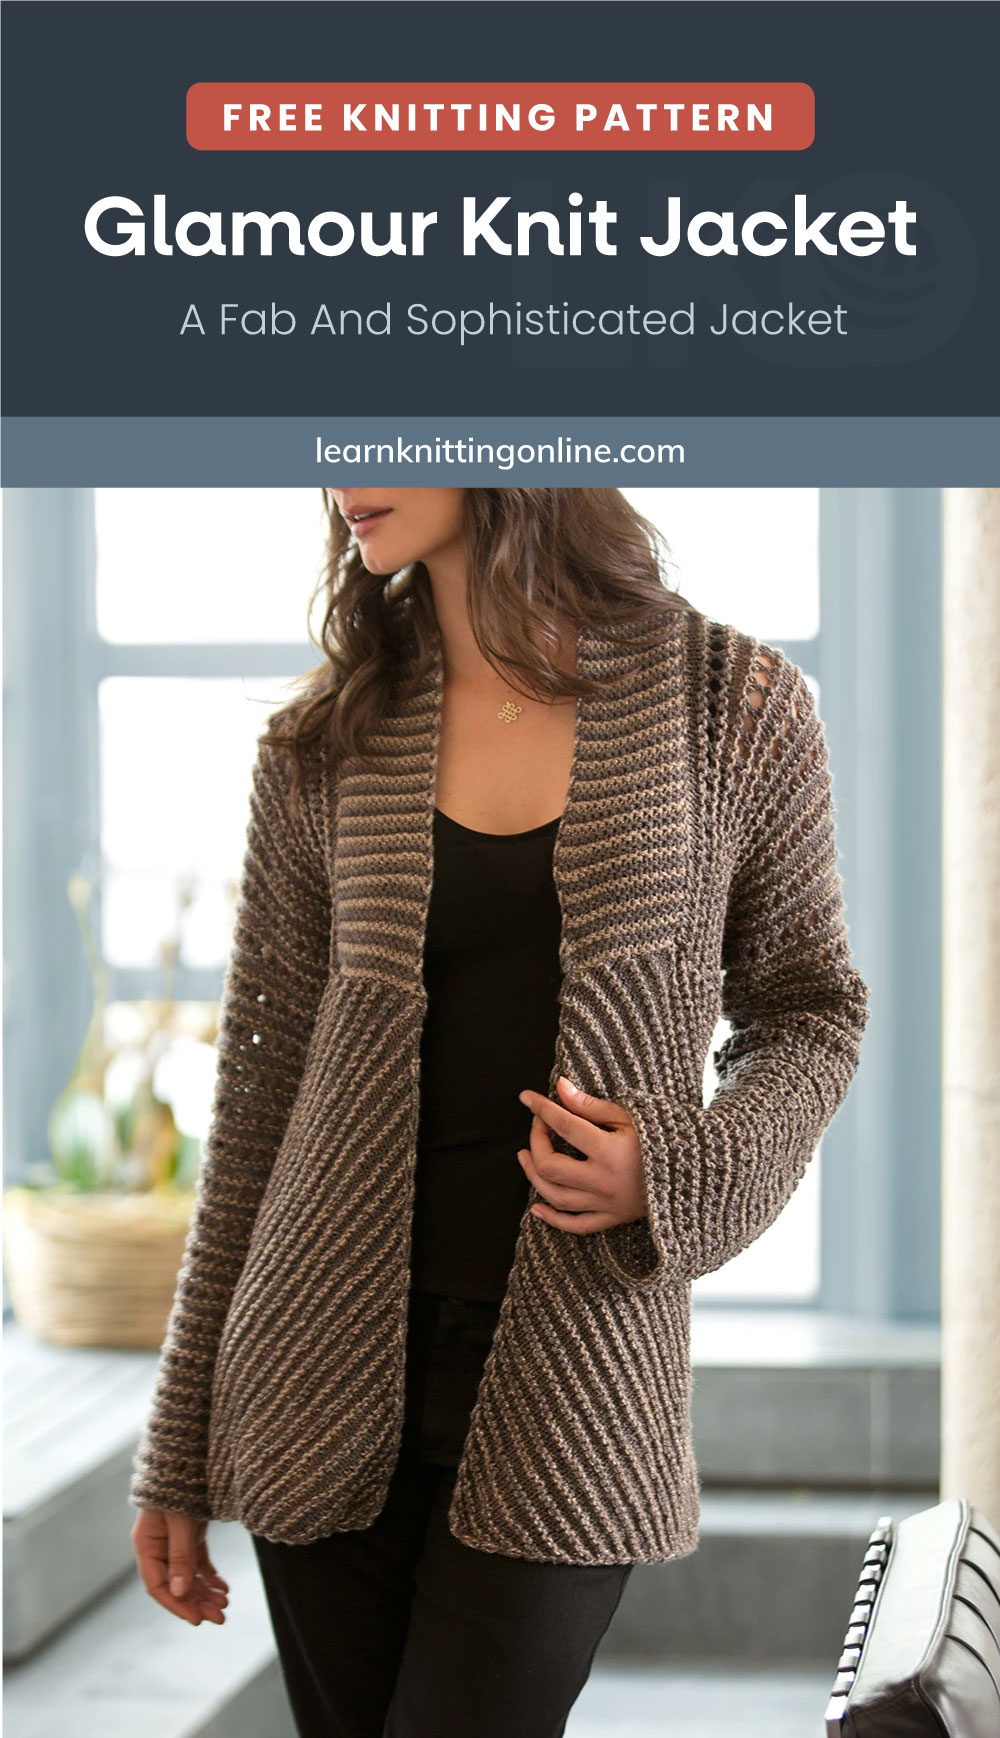 """Text area which says """"Free Knitting Pattern: Glamour Knit Jacket – A Fab And Sophisticated Jacket, learnknittingonline.com"""" followed by a woman wearing a brown knitted jacket"""